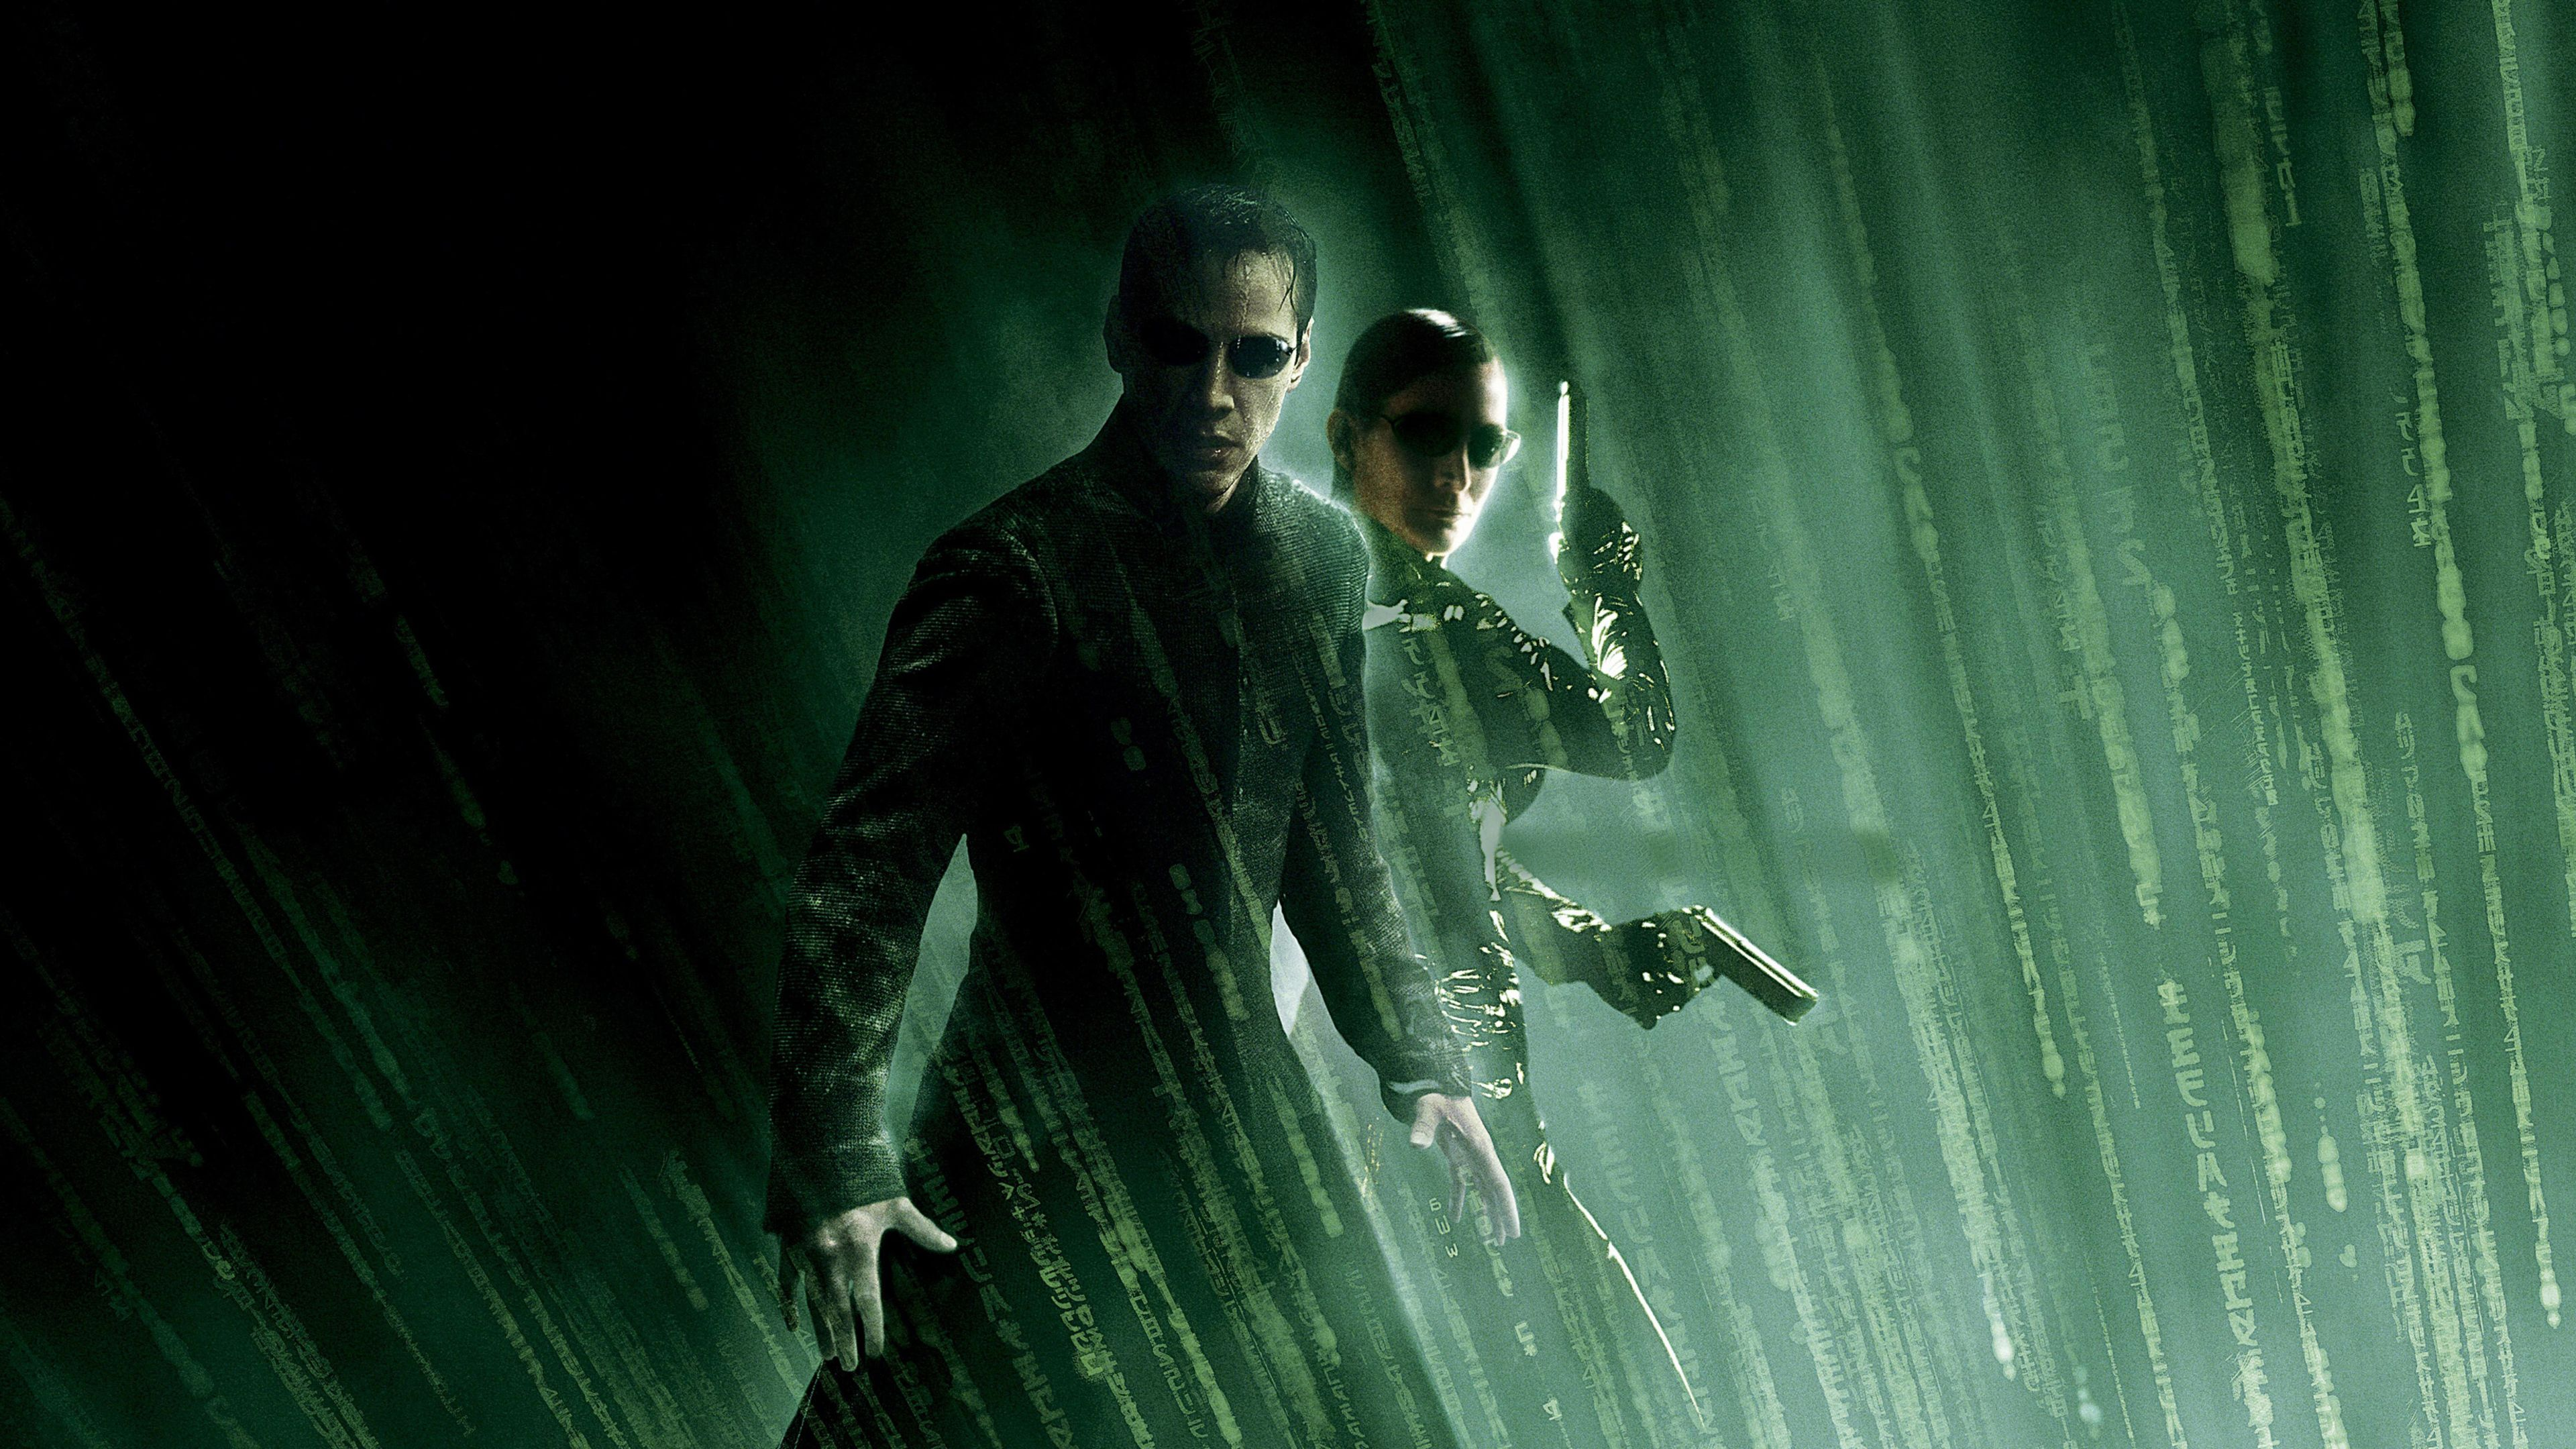 Matrix Trilogy 4k Movies Wallpapers Matrix Wallpapers Hd Wallpapers 4k Wallpapers Cyberpunk Movies Free Movies Online Matrix